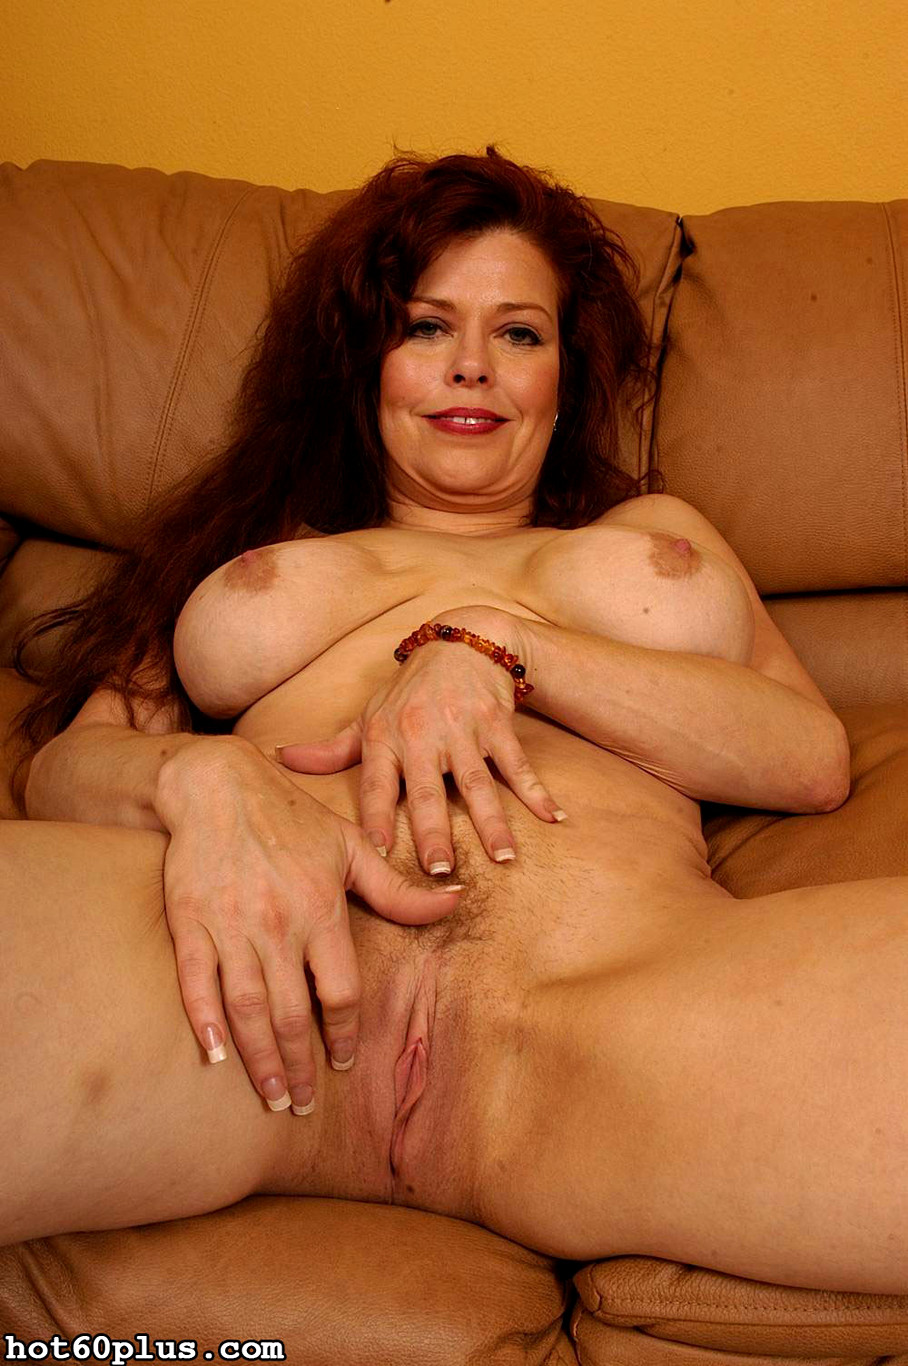 red head gilf nude